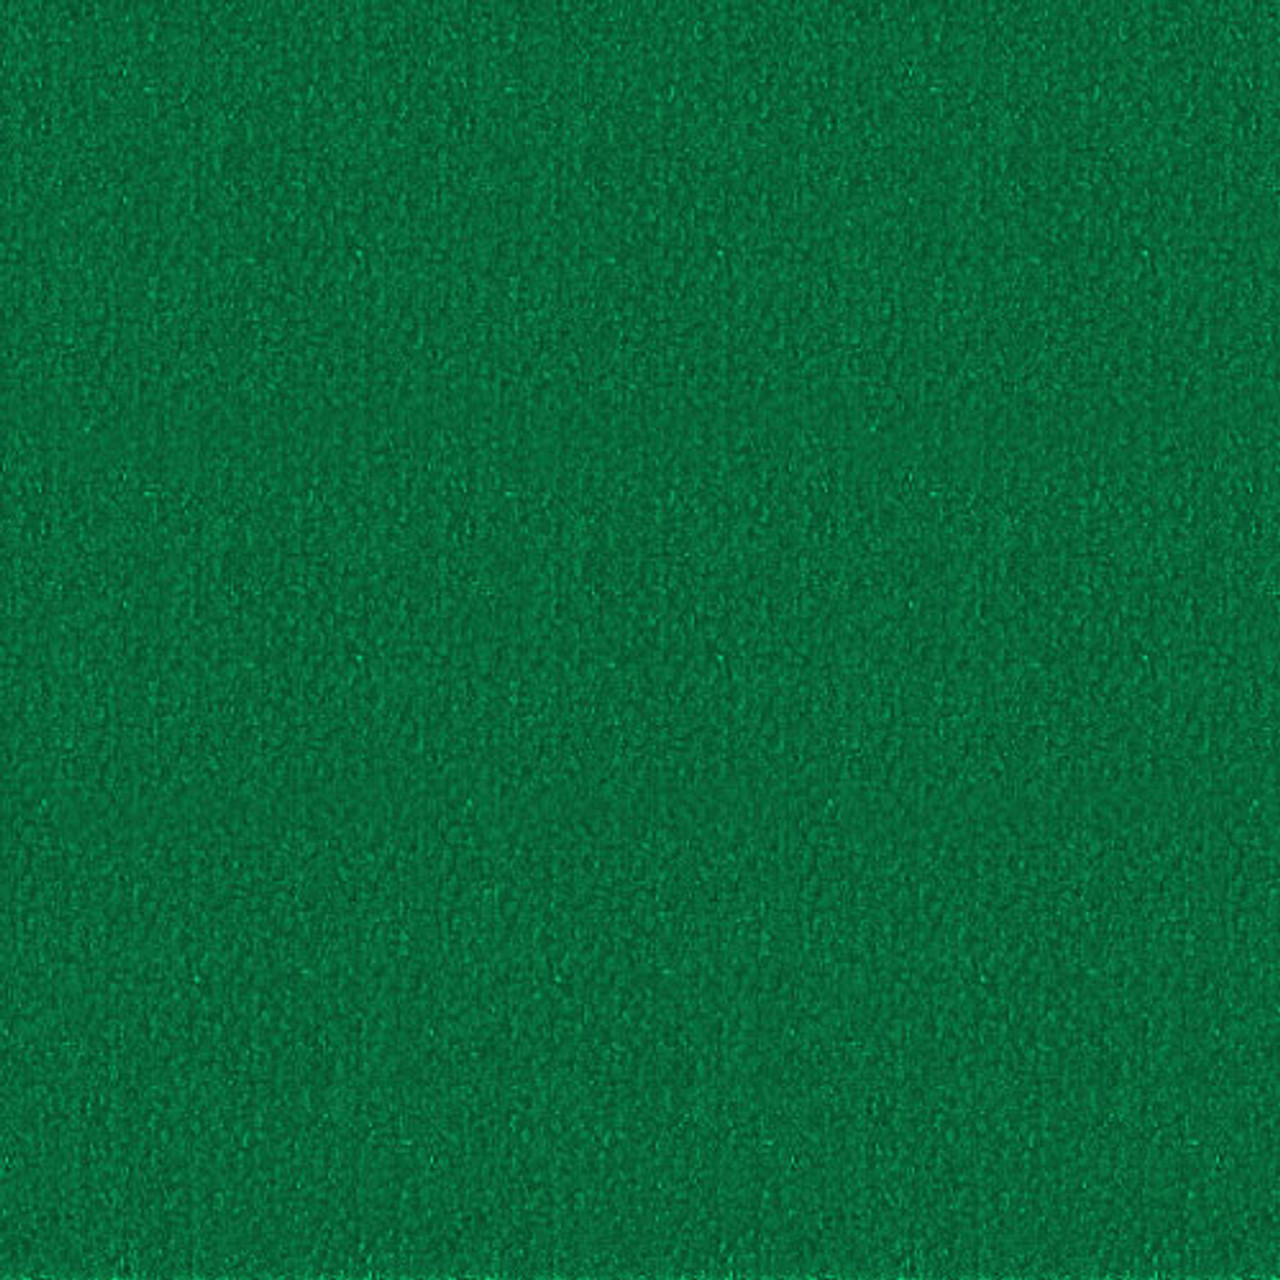 pool valley championship green ultra felt cloth ozonepark with backed product teflon table